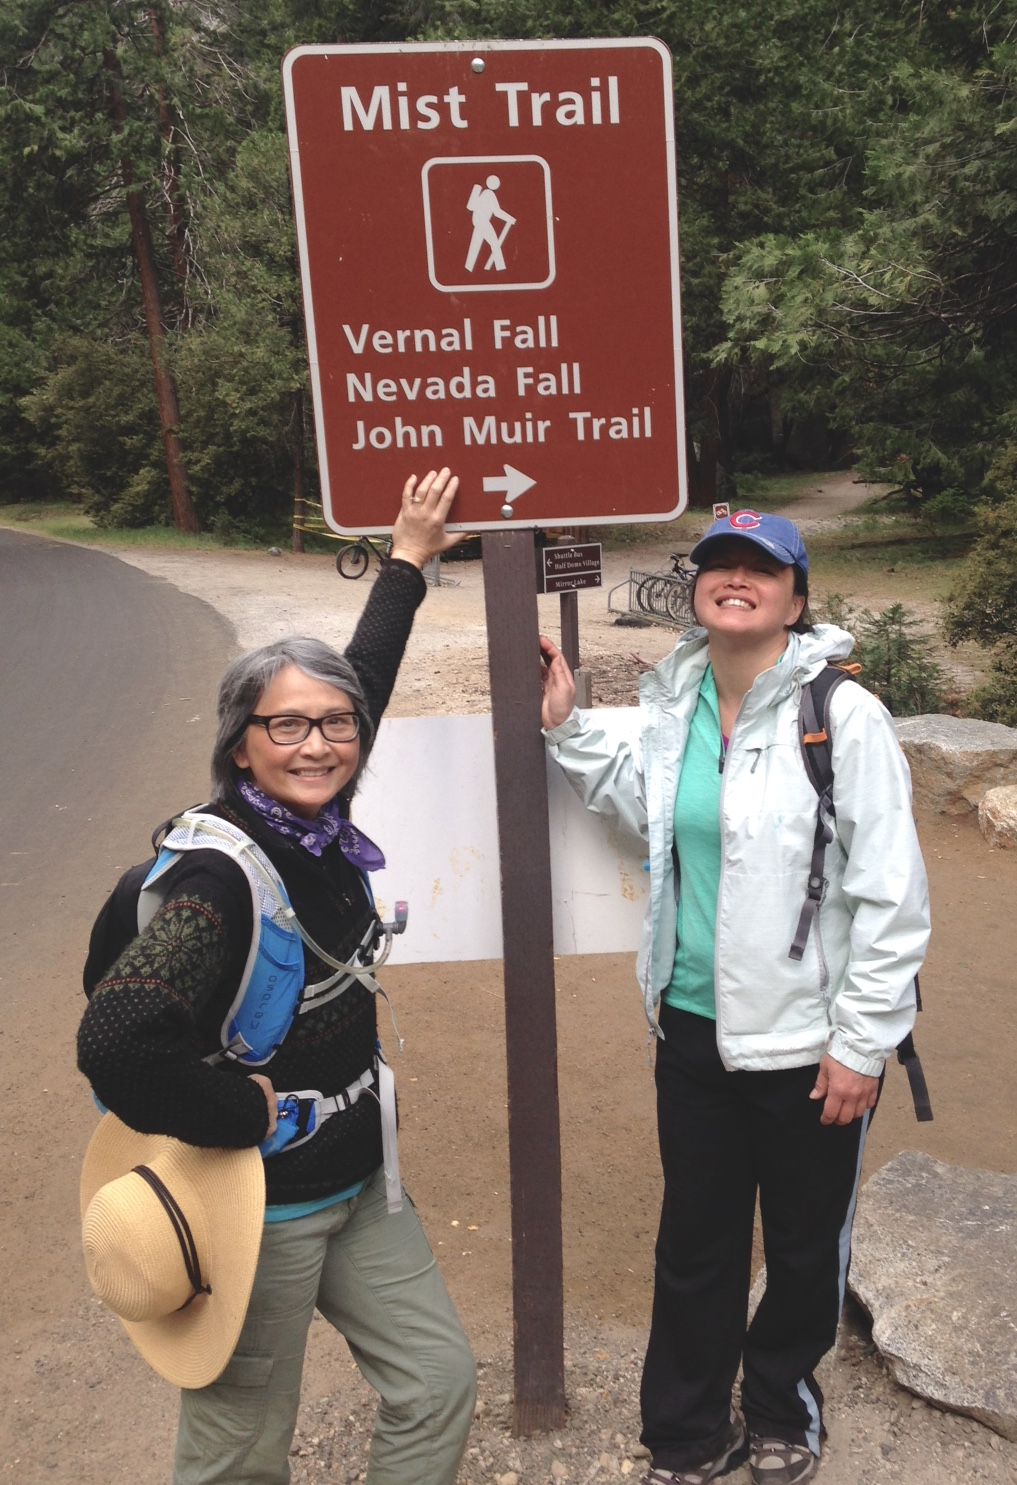 Total: 6.7 miles and 2162 feet elevation gain from the bottom of Mist Trail to the top of Nevada Fall. Yosemite, California. 2016. www.chibeingchi.com